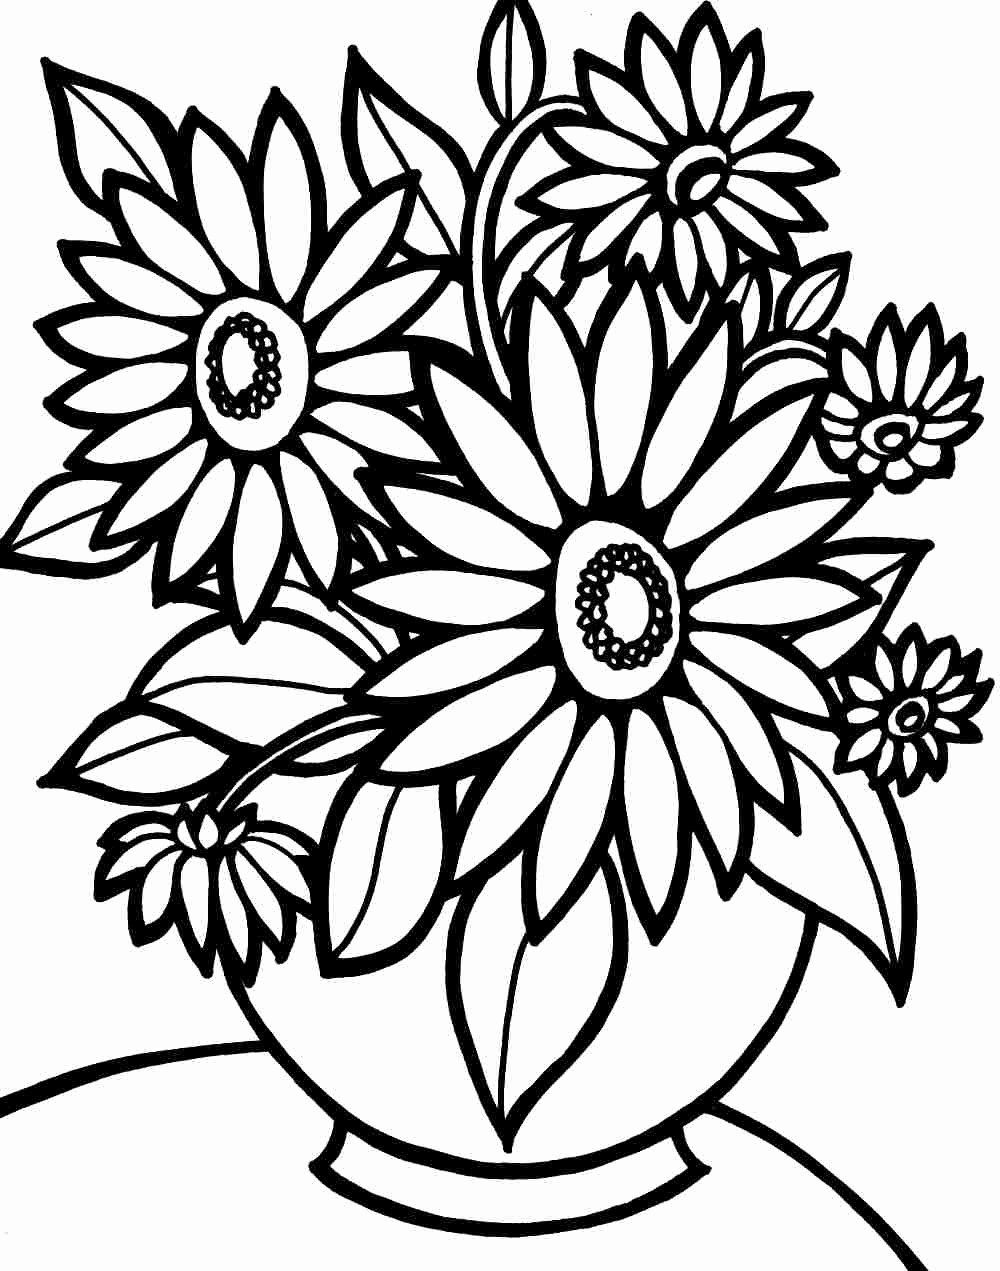 Coloring Books For Seniors Inspirational Coloring Pages For Seniors At Getcolorings Printable Flower Coloring Pages Easy Coloring Pages Flower Coloring Sheets